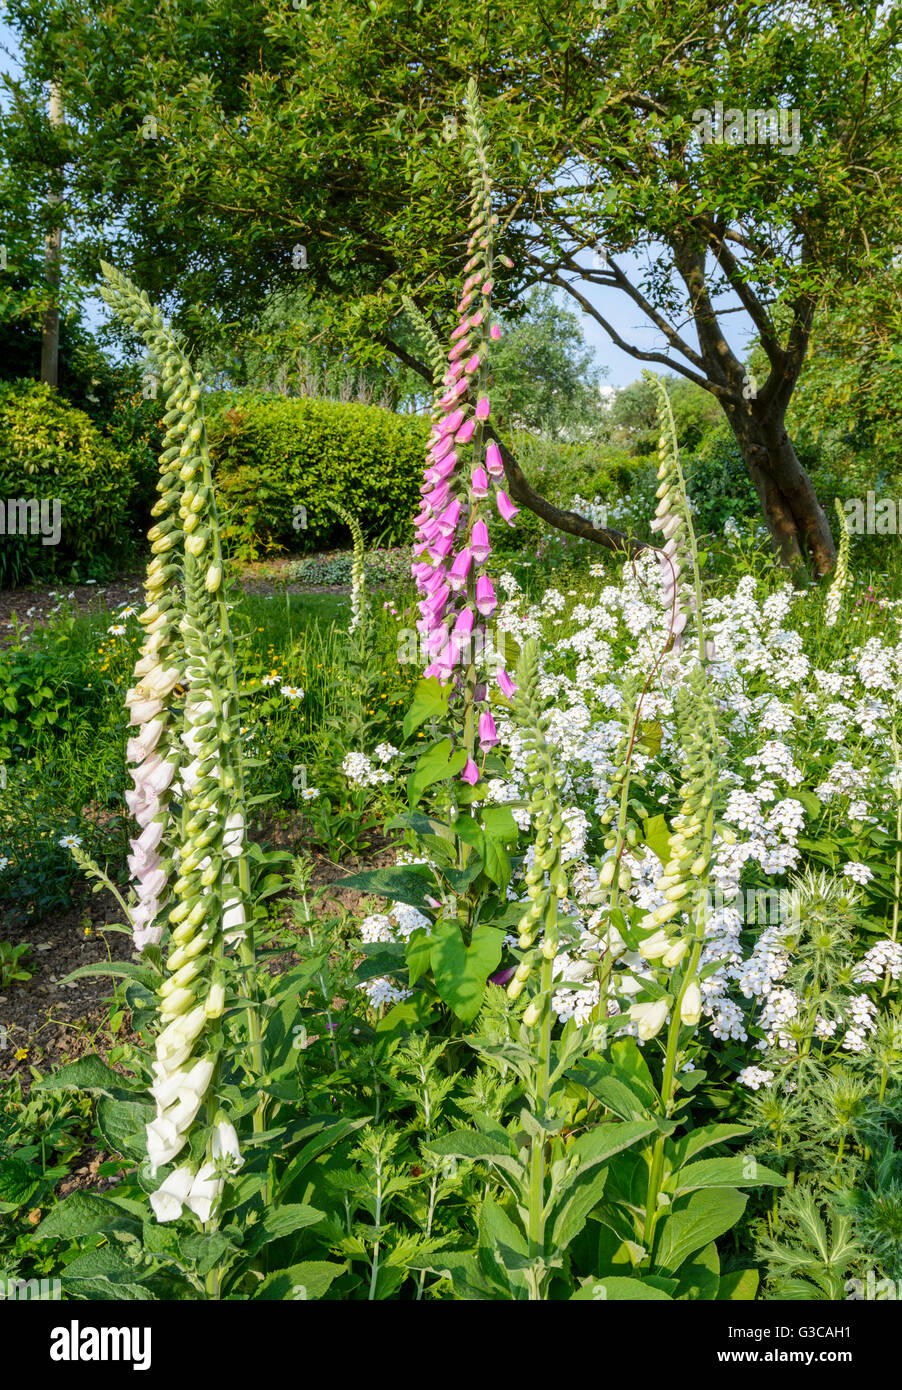 Common Foxgloves (Digitalis purpurea) growing in a park in early Summer in West Sussex, England, UK. - Stock Image